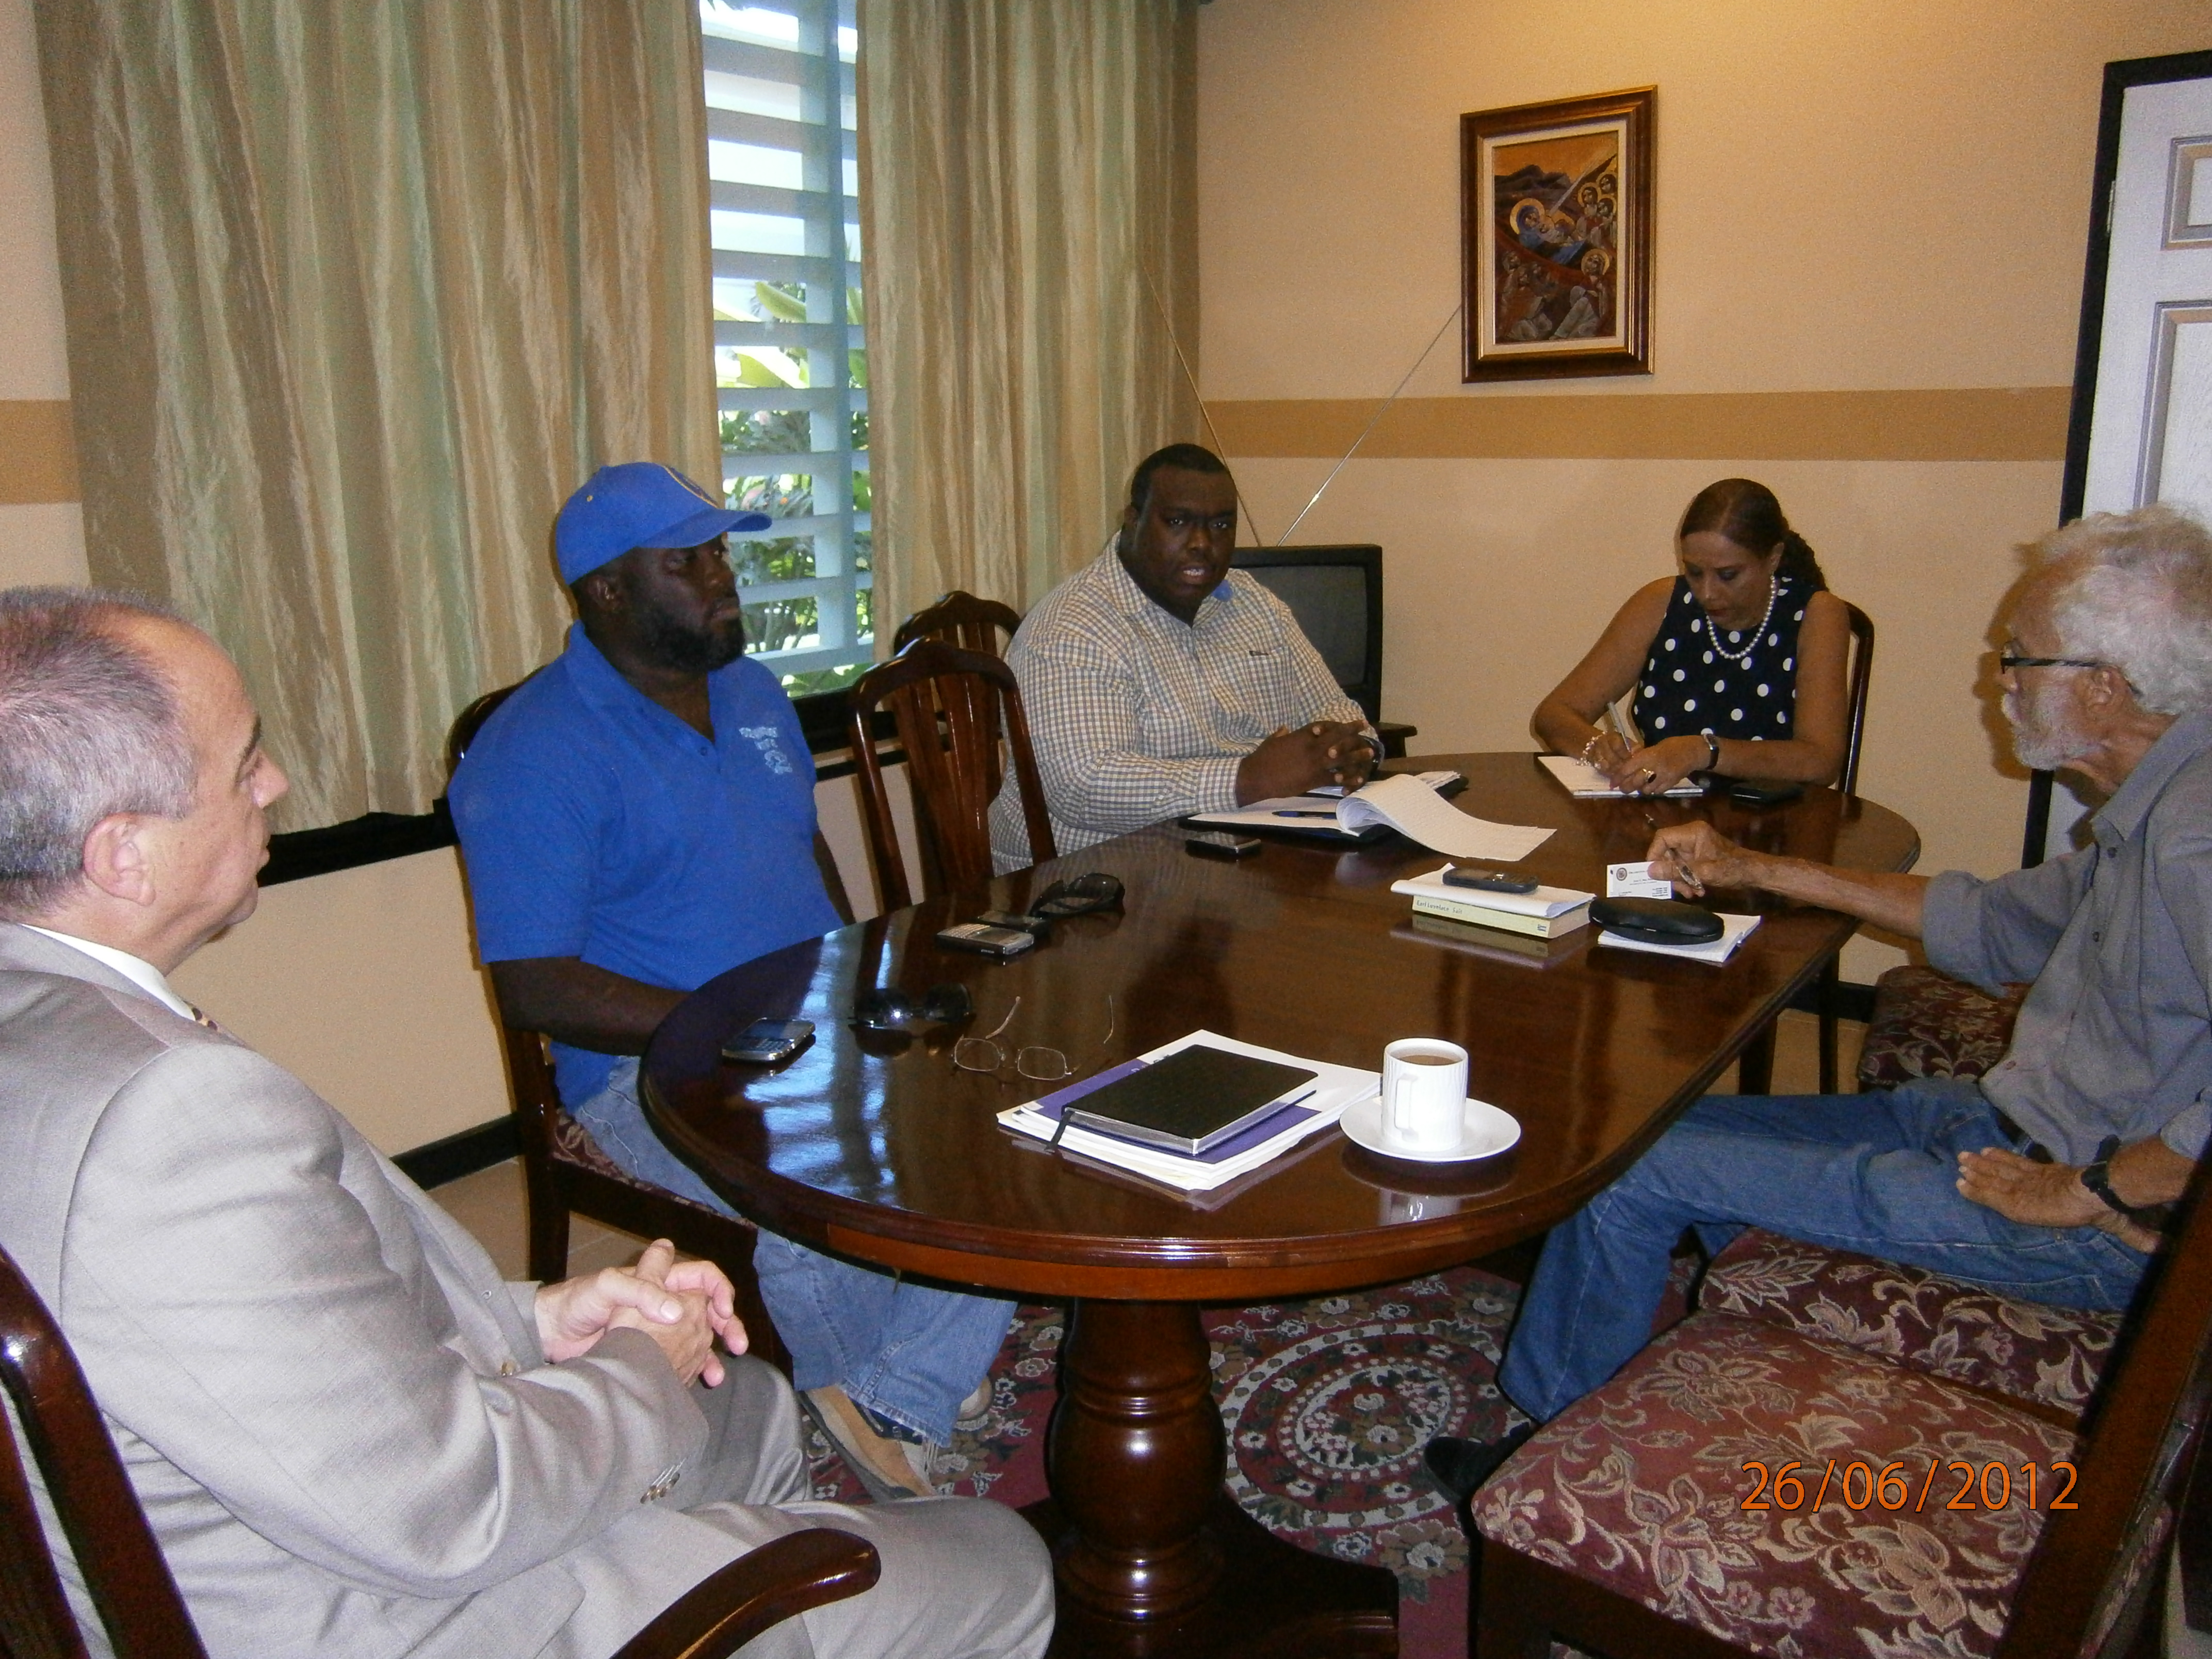 OAS Representative Dr. Joan Neil and PADF Senior Programs Director Mr. Louis Alexander meet with Peace Management Initiative Director Mr. Damion Hutchinson at the OAS Country Office in Jamaica